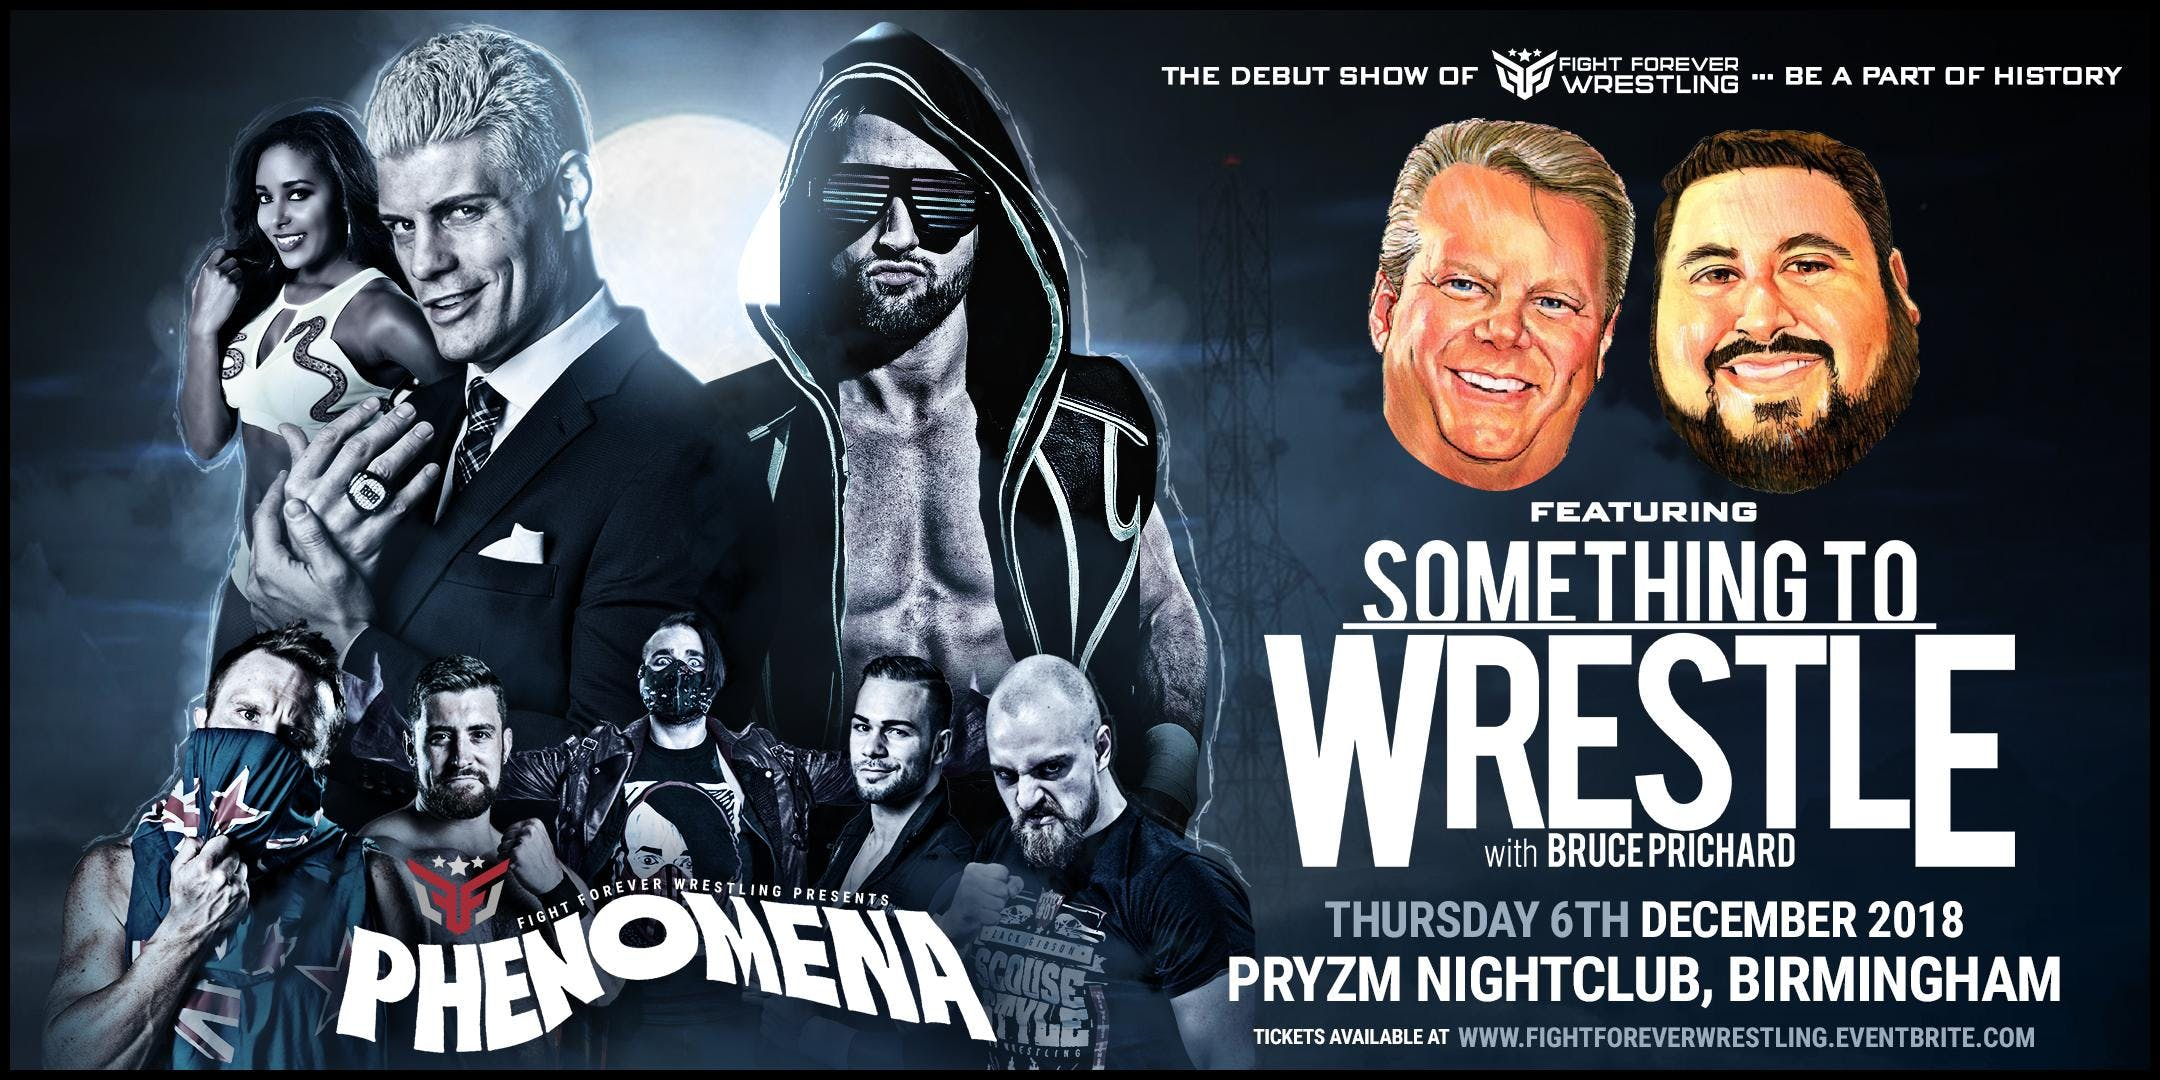 Phenomena feat. Something To Wrestle With Bru